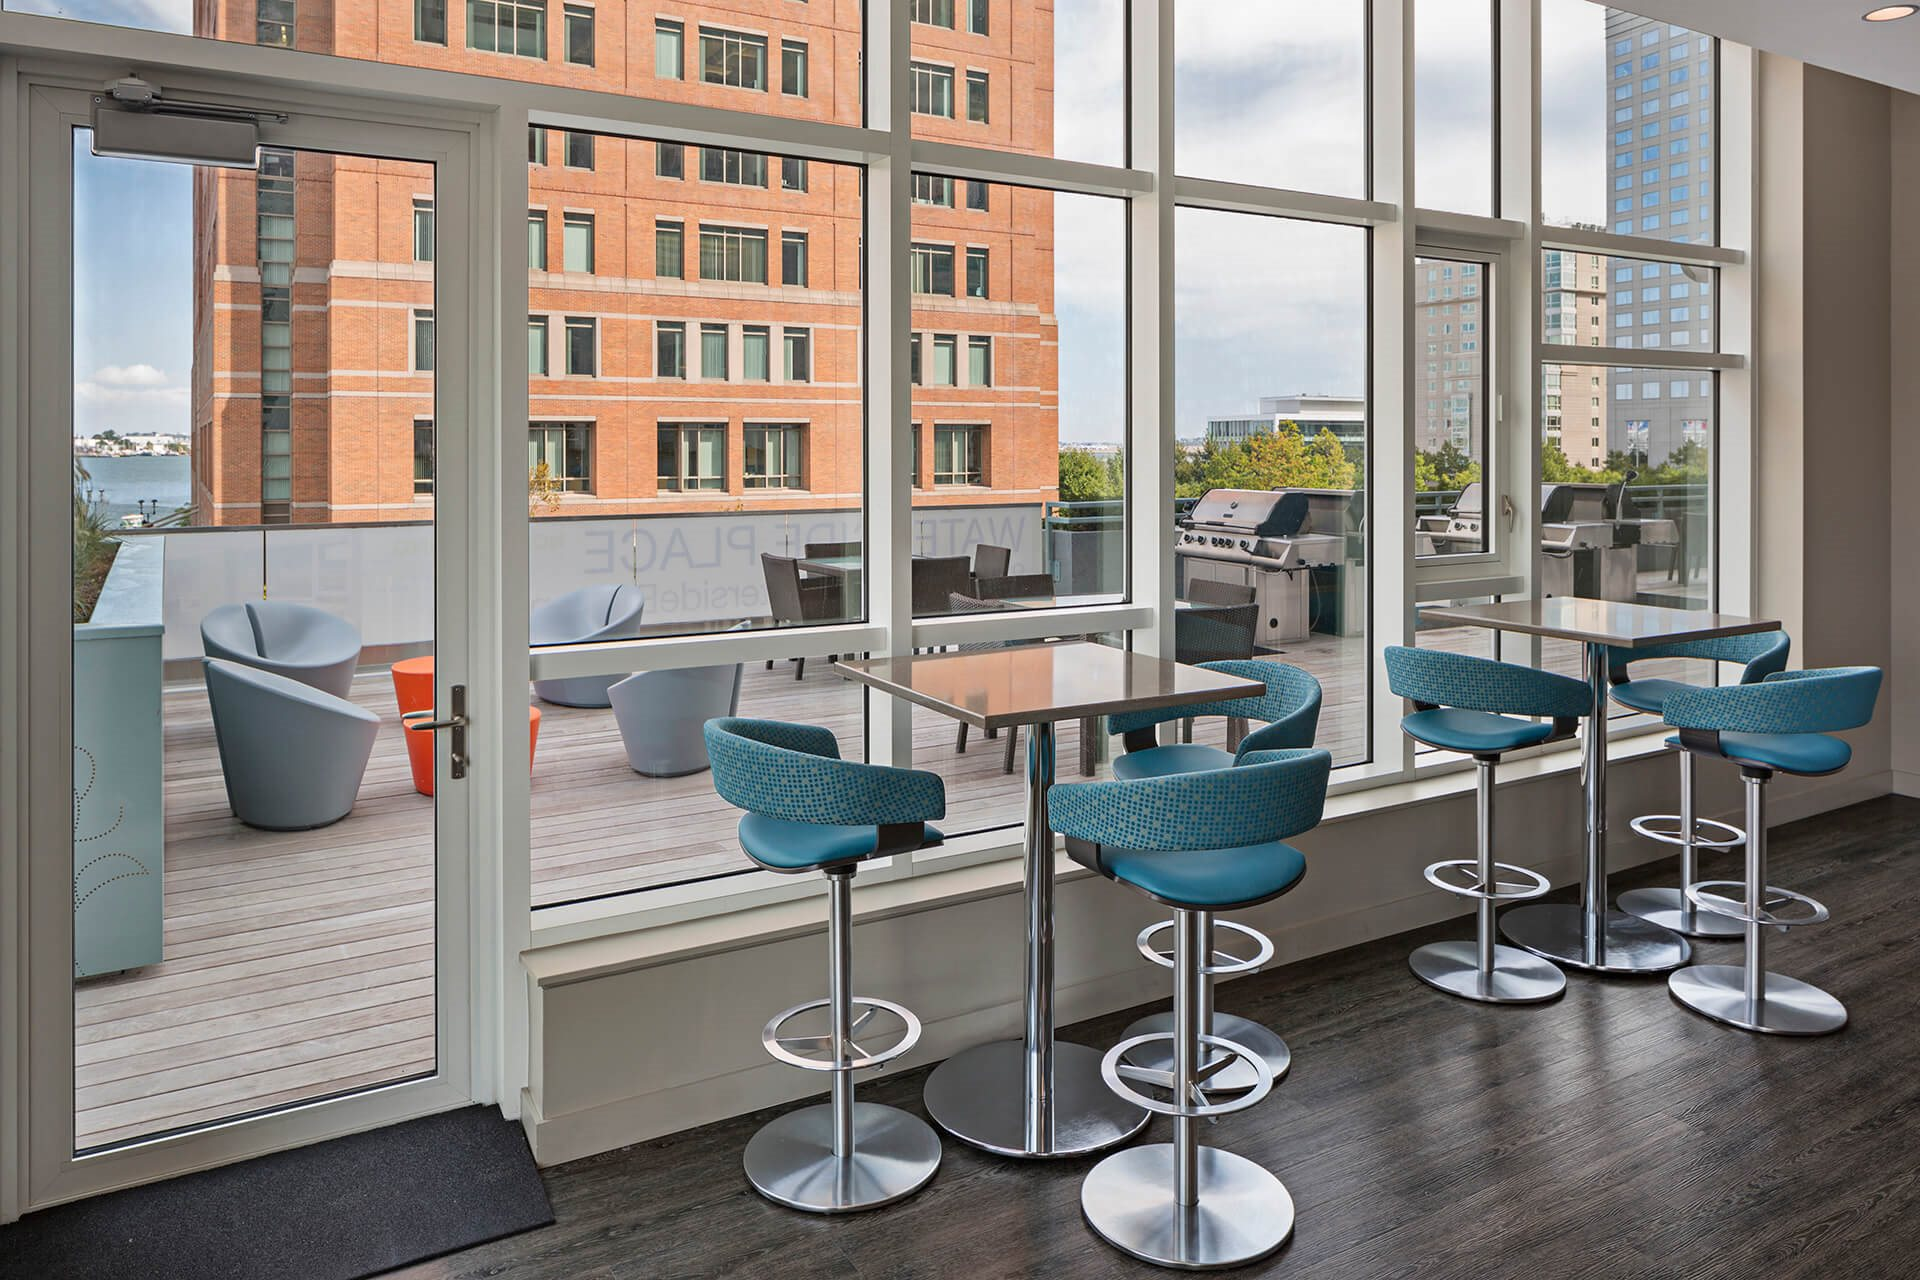 Enjoy the Indoor Resident Pub at Waterside Place by Windsor, Boston, 02210